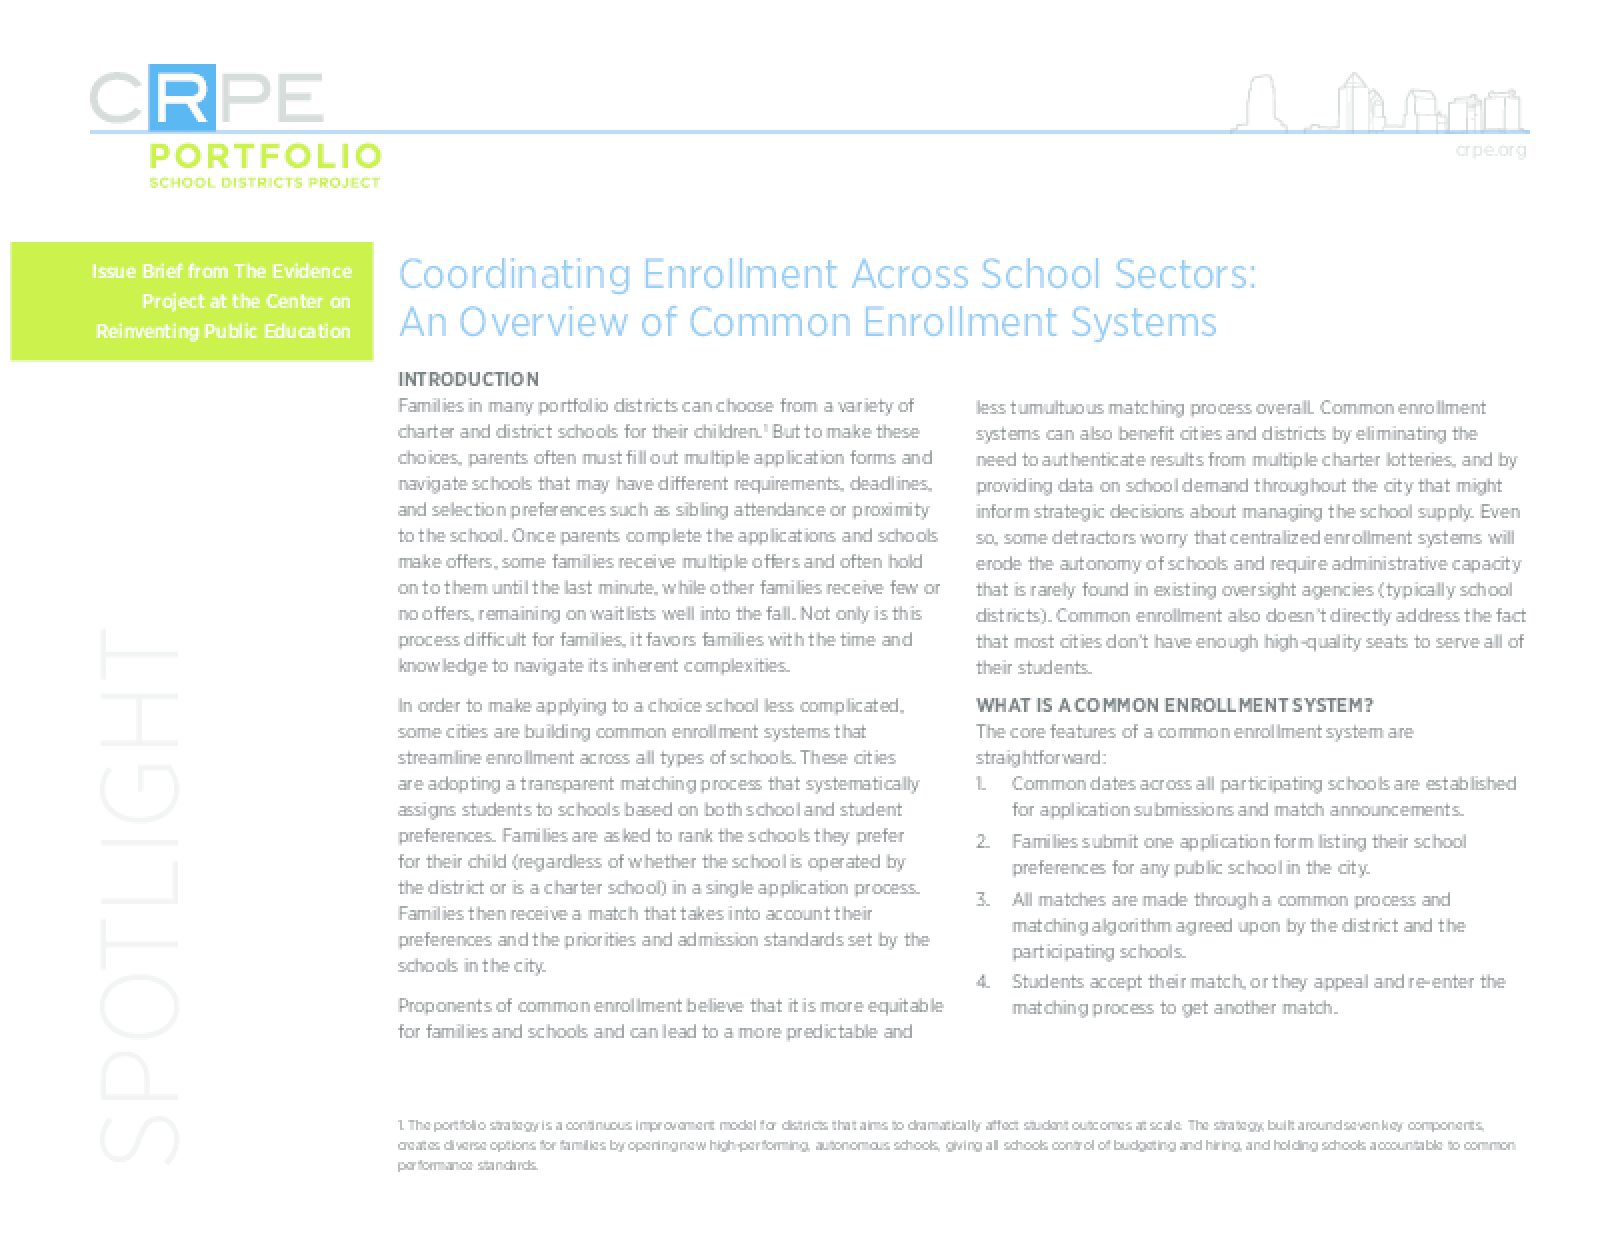 Coordinating Enrollment Across School Sectors: An Overview of Common Enrollment Systems